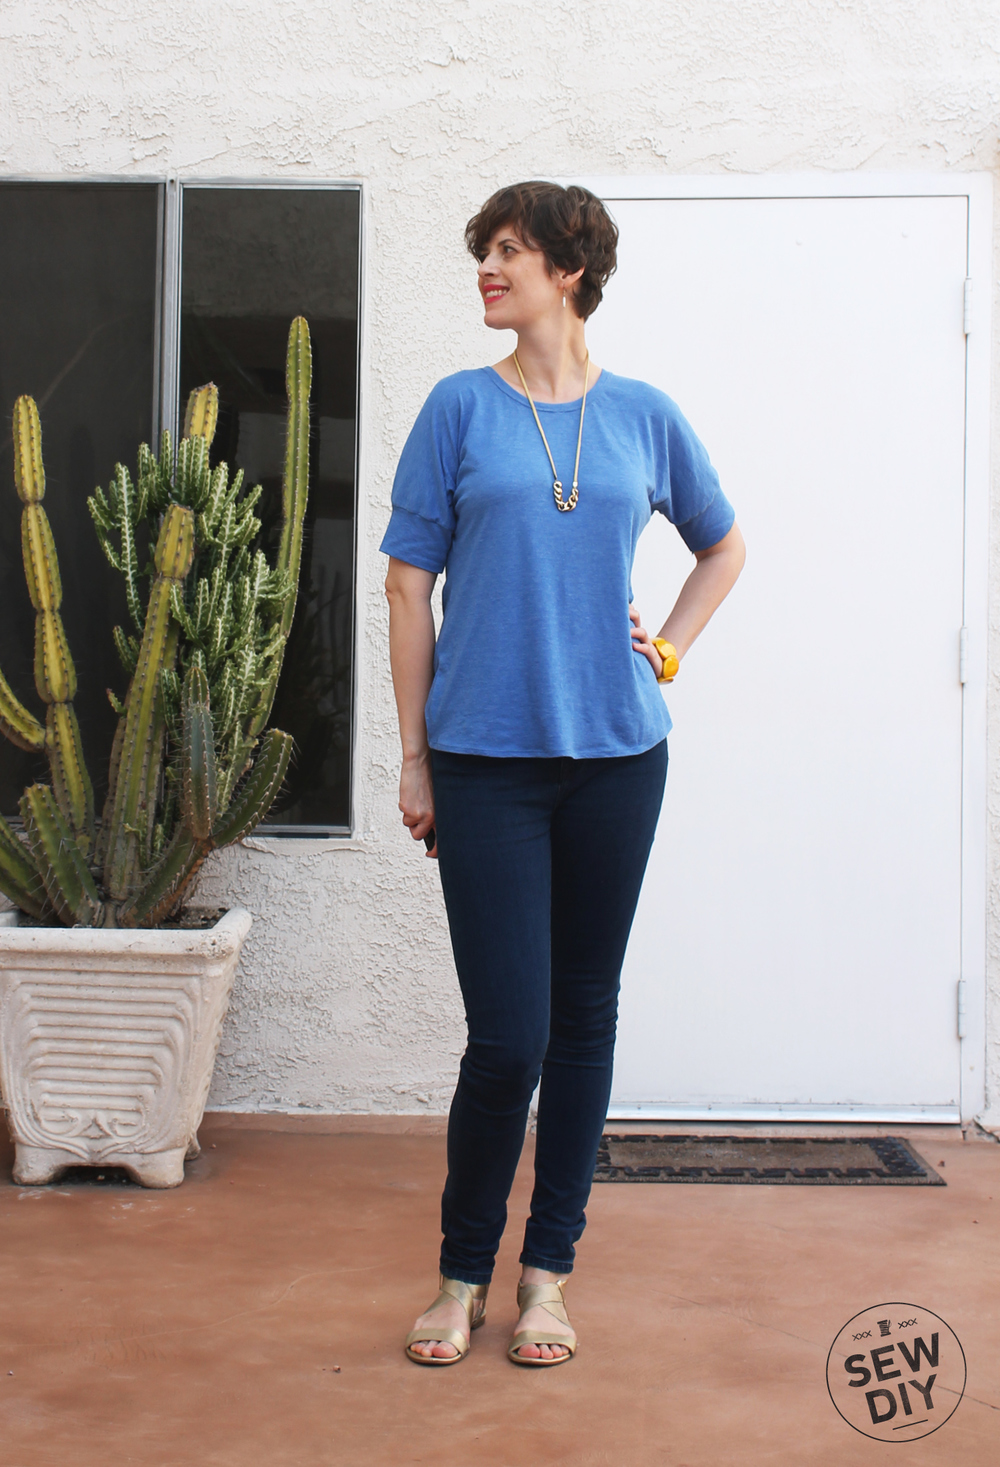 Seafarer Top – Sew DIY